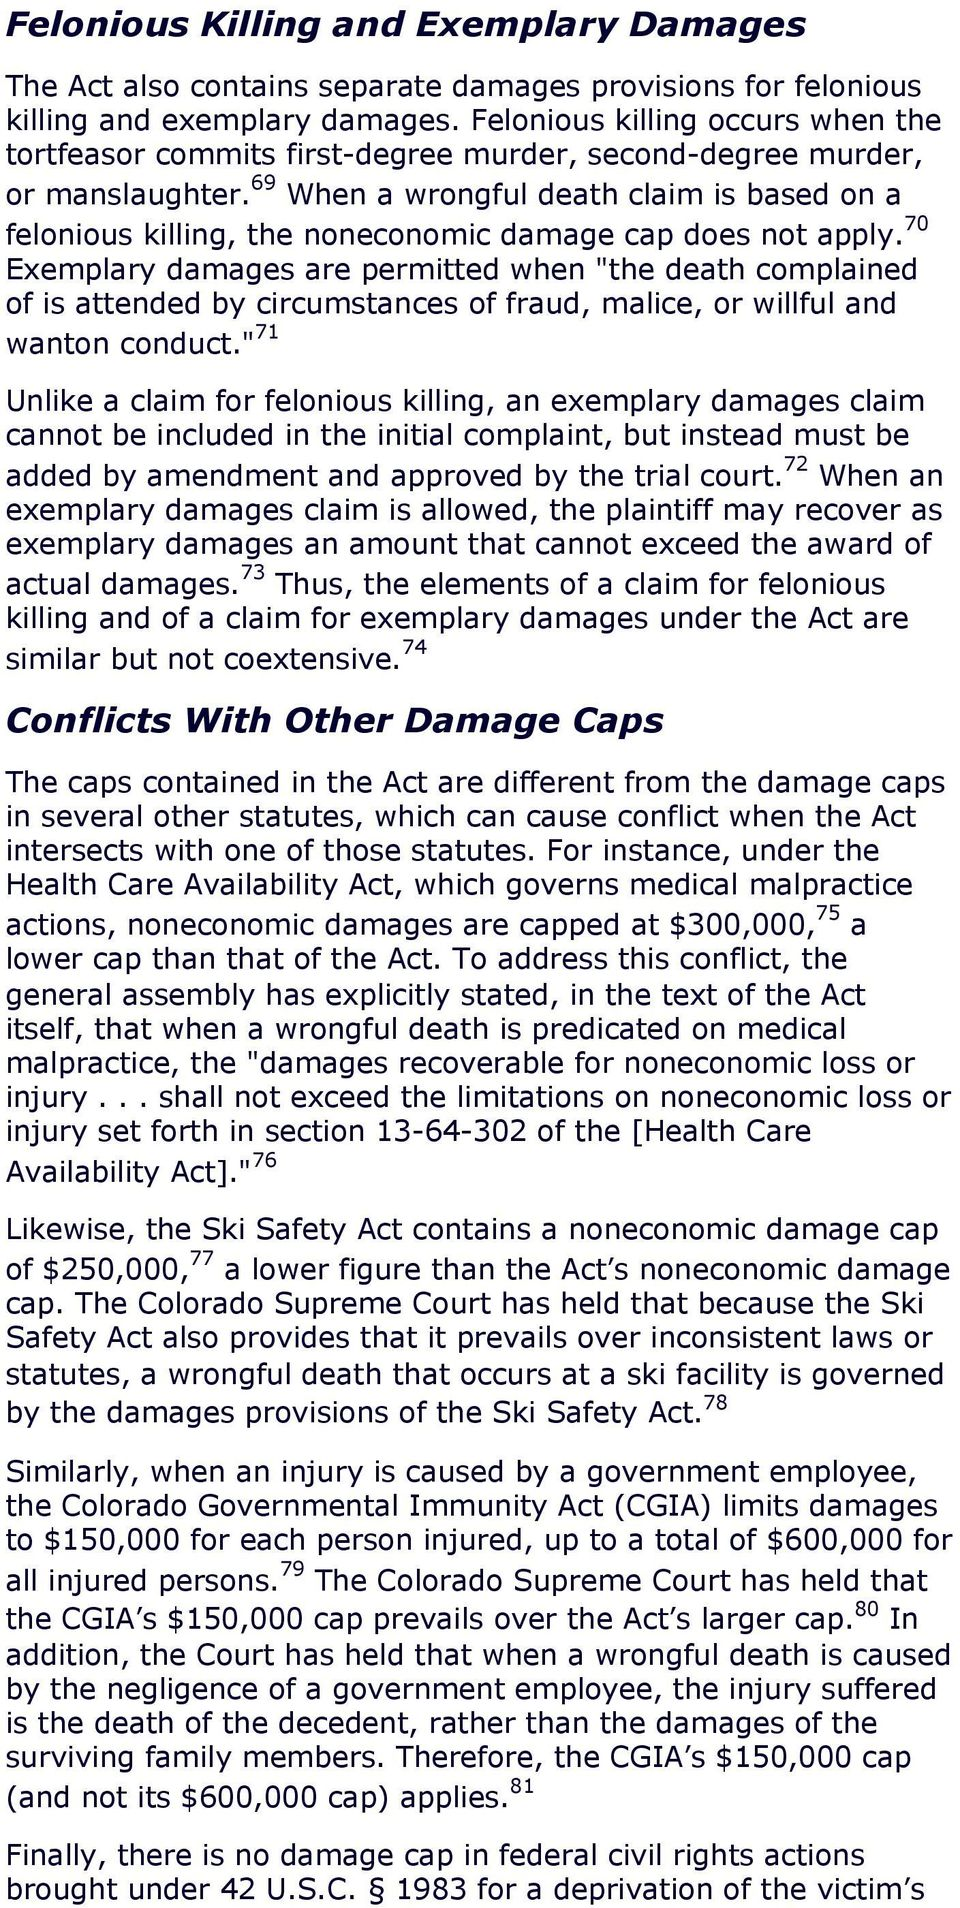 69 When a wrongful death claim is based on a felonious killing, the noneconomic damage cap does not apply.